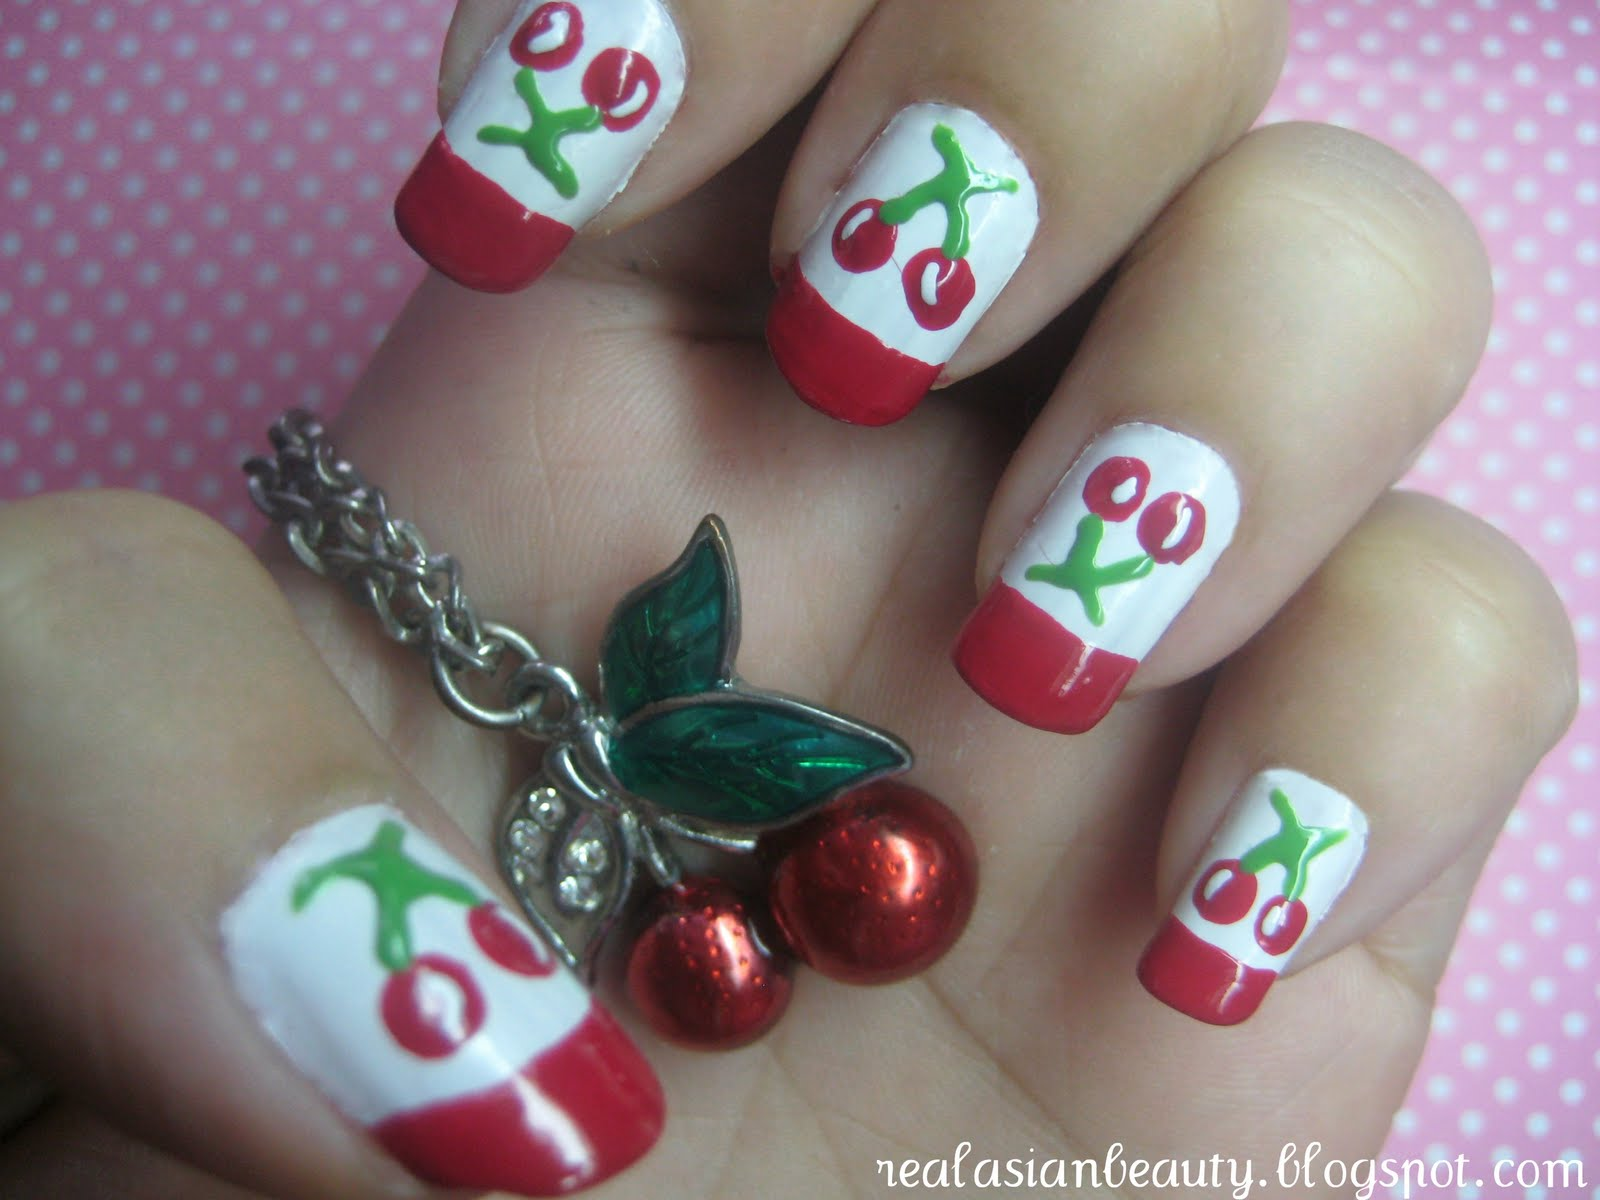 Real Asian Beauty Cute Cherry Nail Art